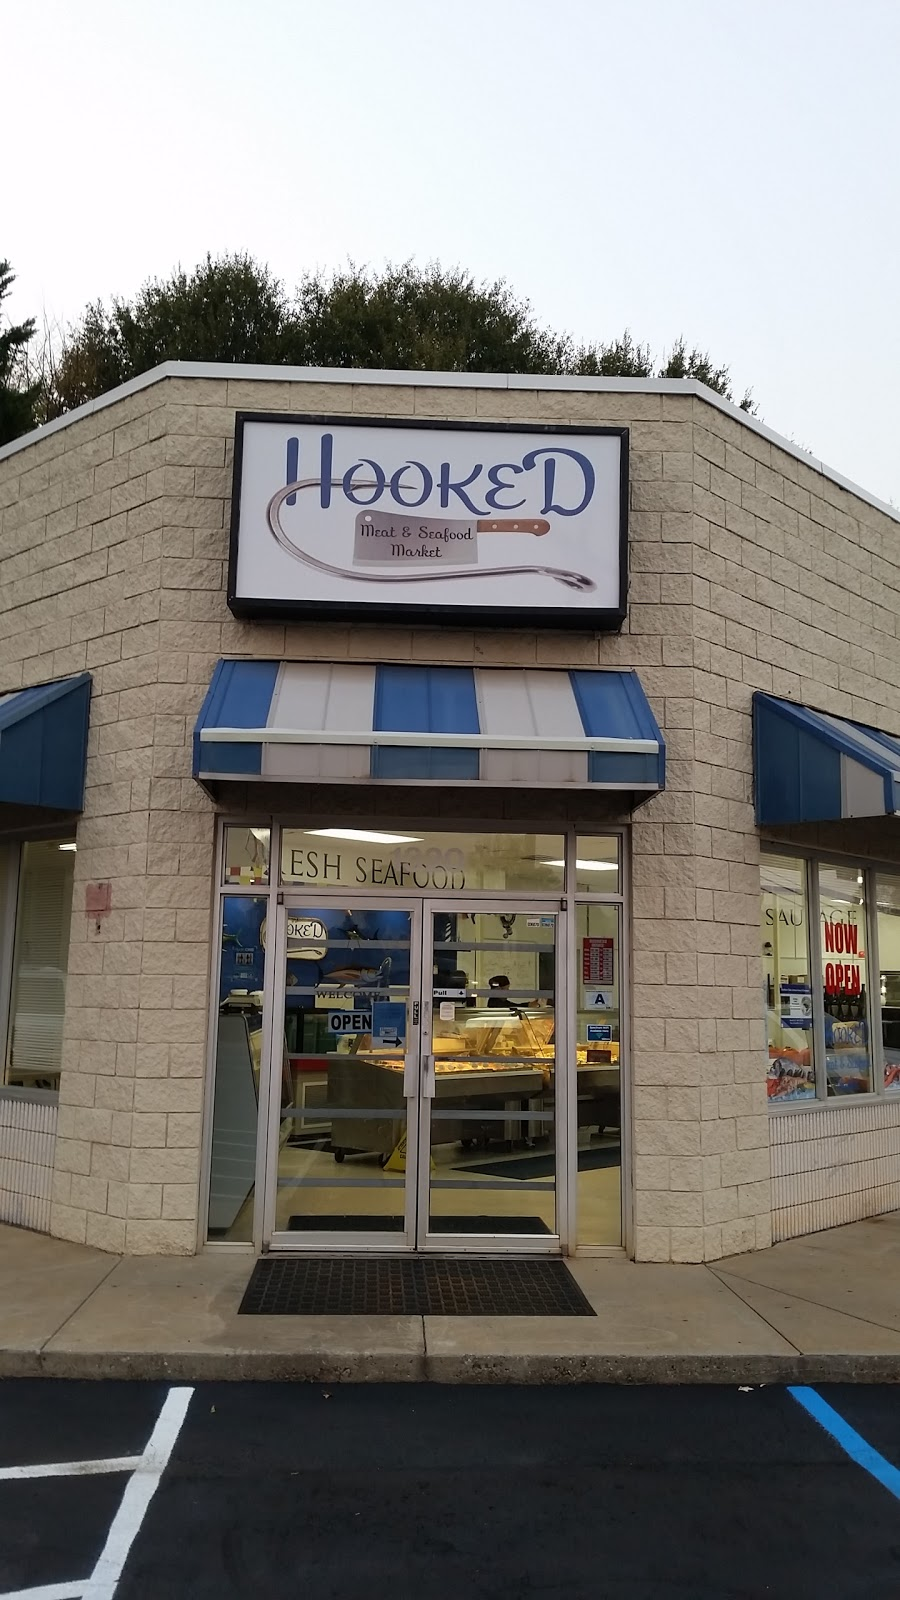 Hooked Meat & Seafood Market